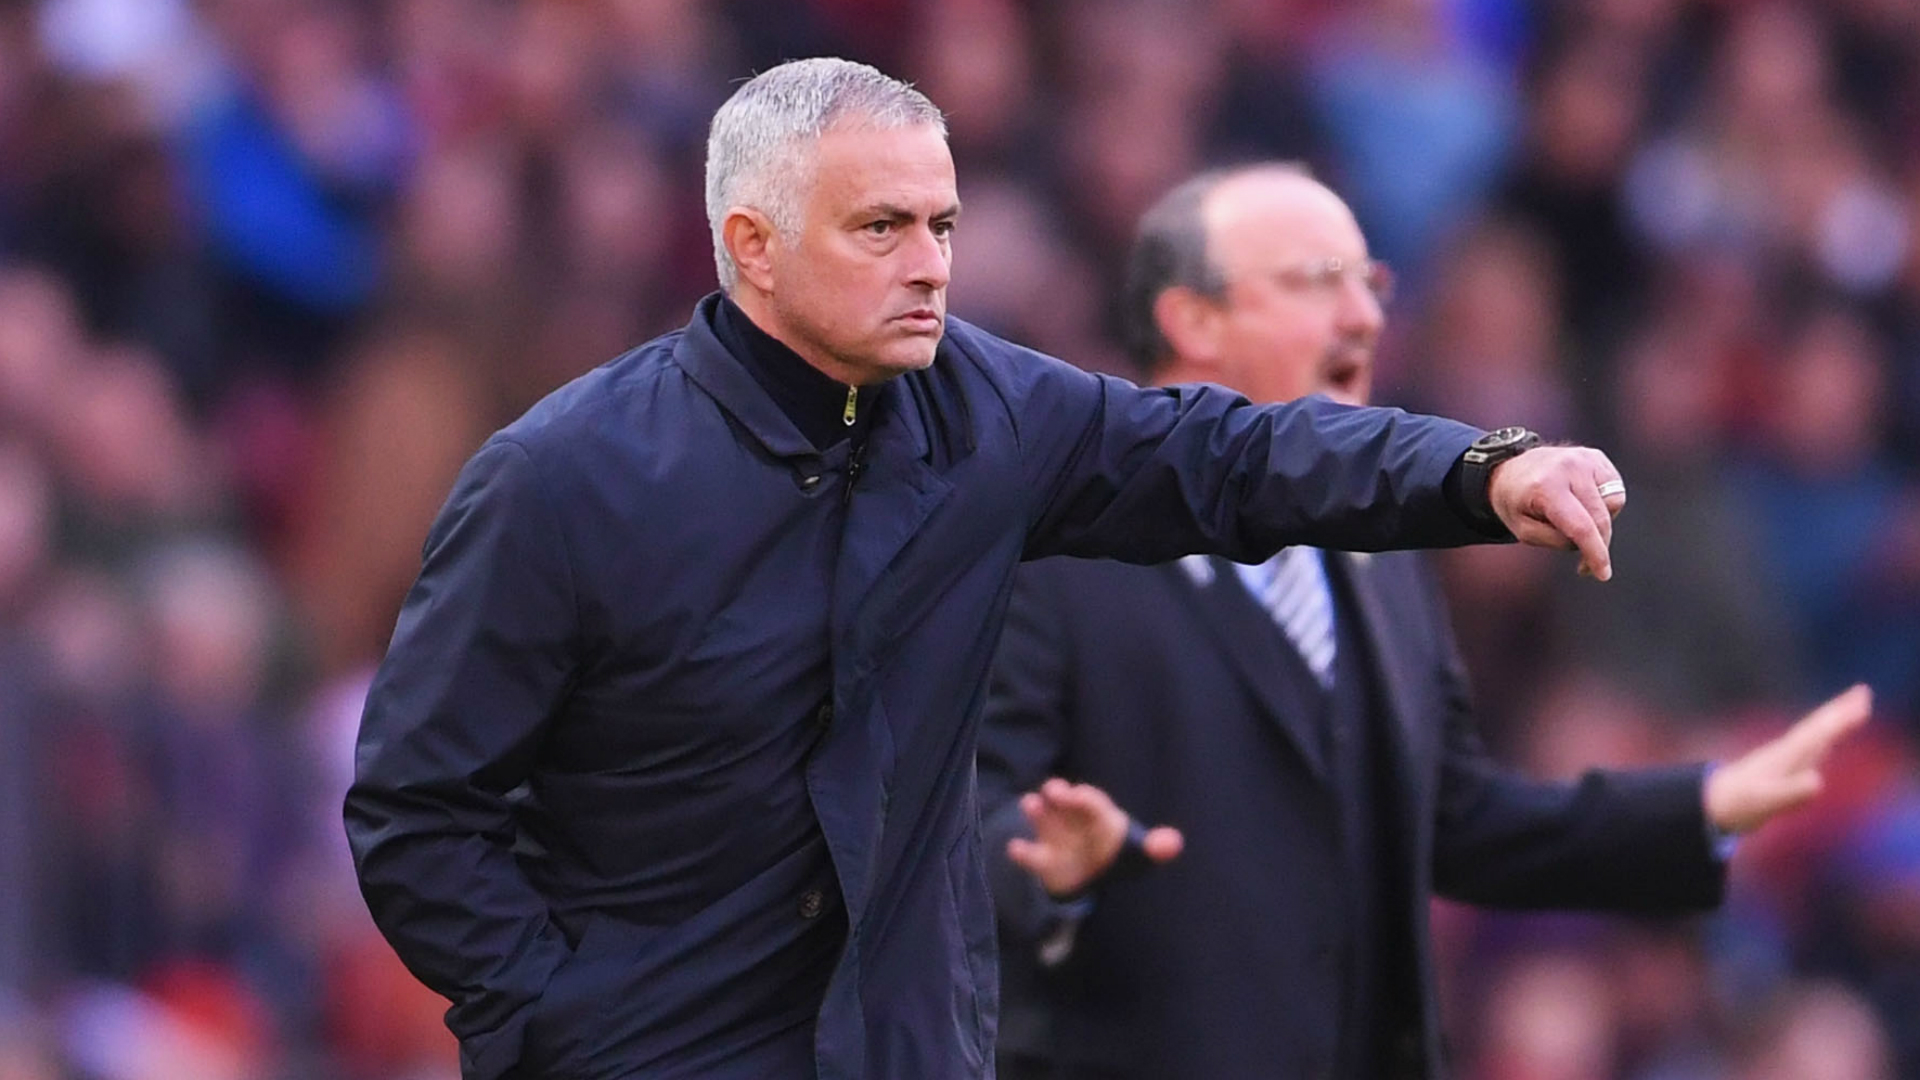 Newcastle United have been linked with a move for Jose Mourinho but the former Manchester United boss indicated he would not be interested.